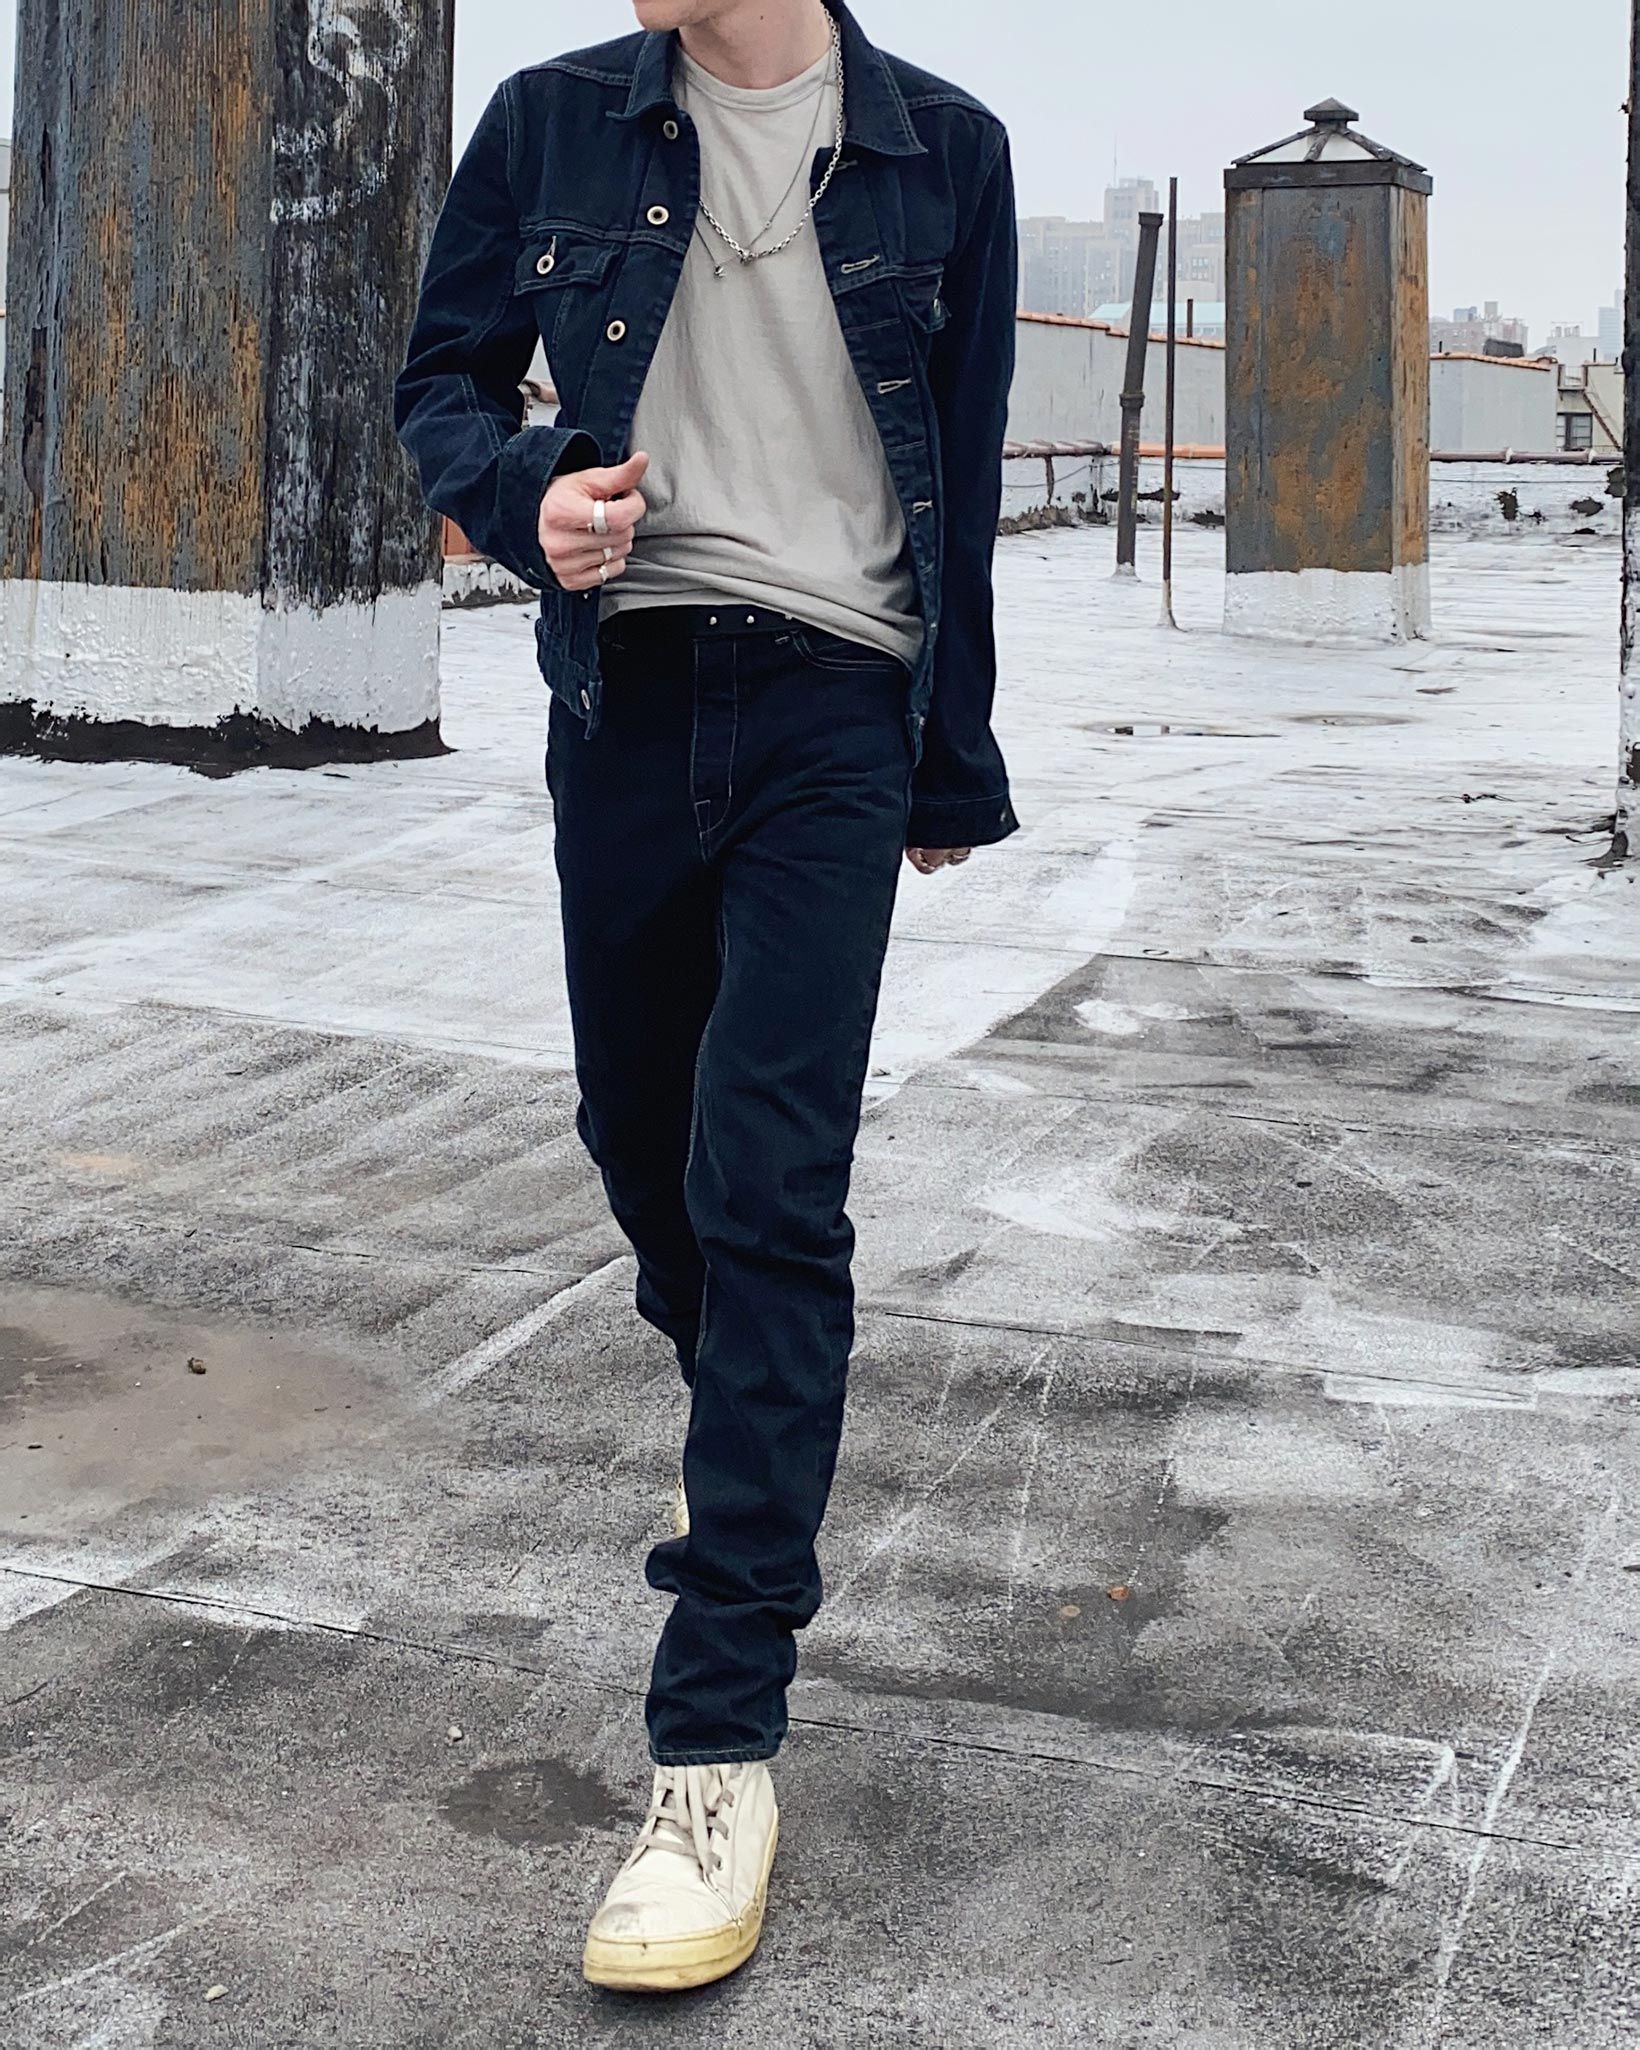 Rick Owens DRKSHDW Worker Jacket - Made in Japan Overdyed (Self Edge Exclusive) - Image 18